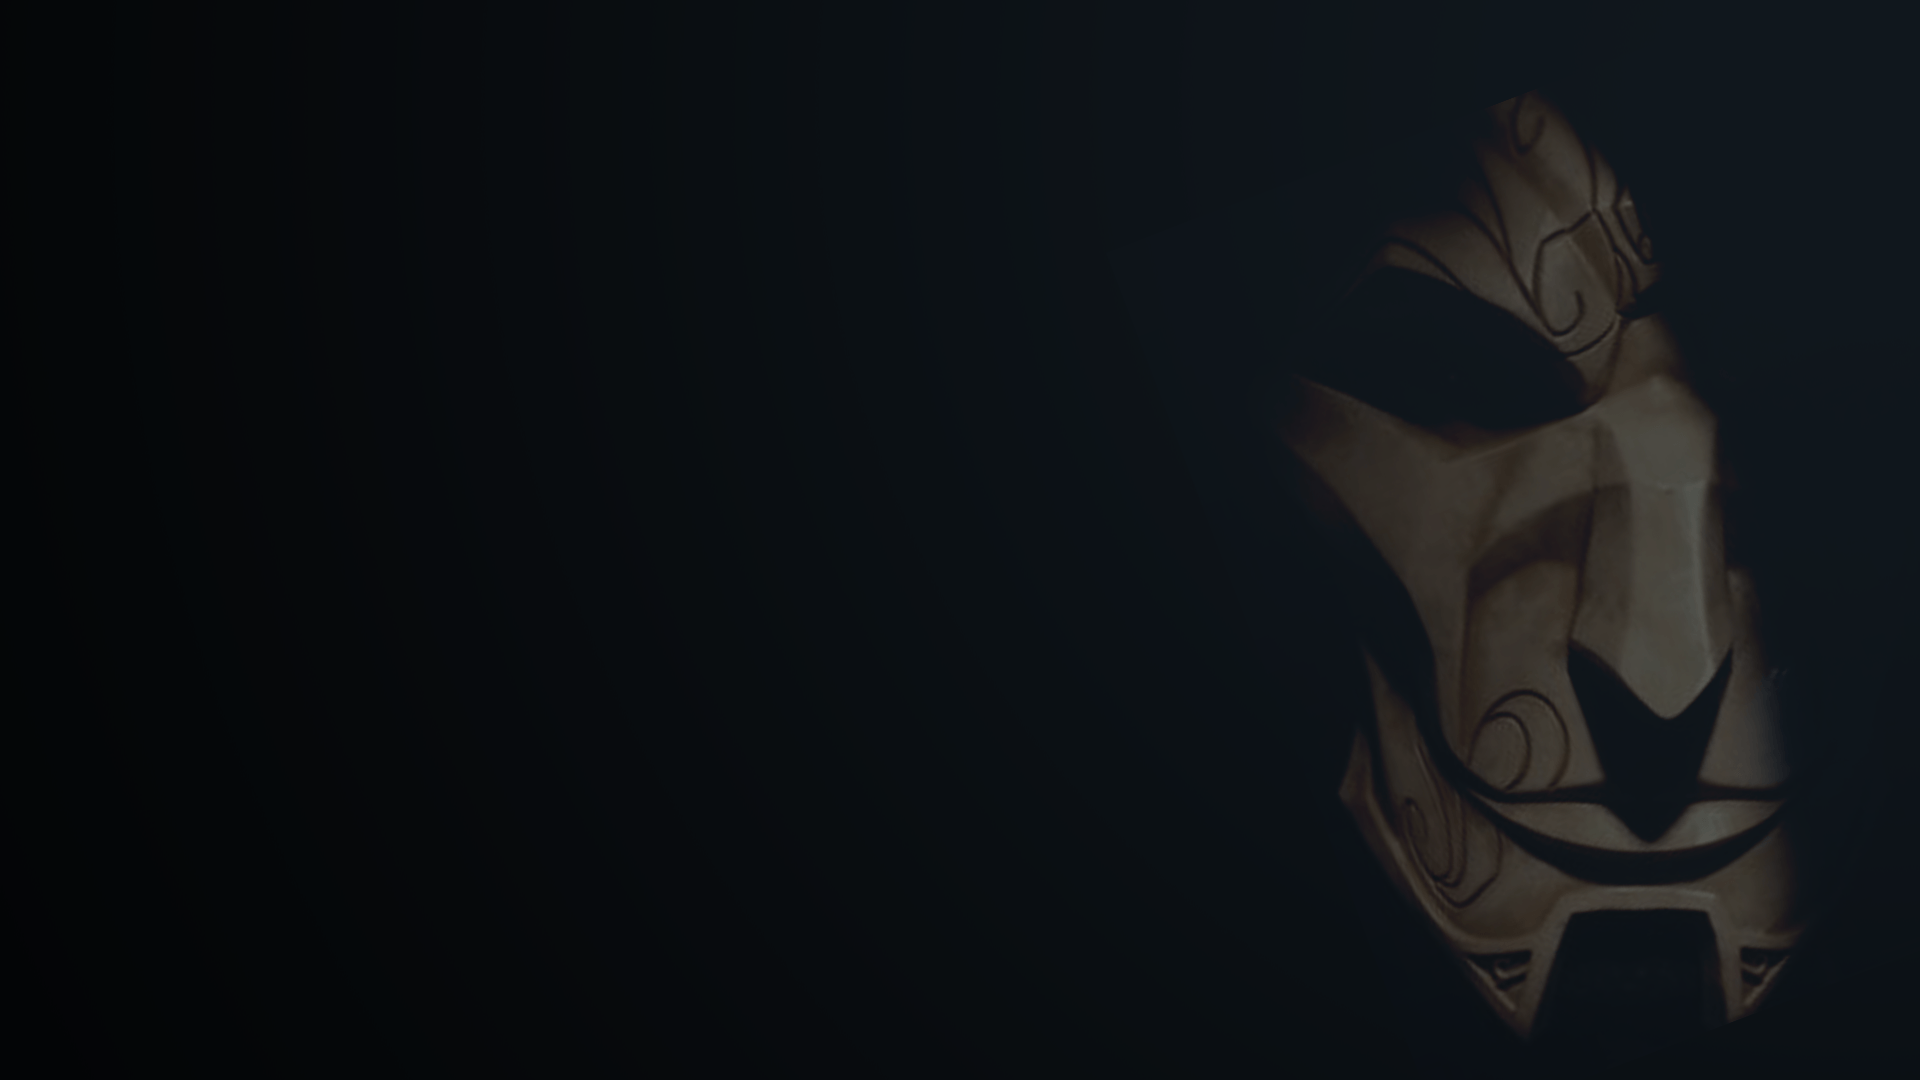 Lol Wallpapers Hd 1980x1080 Jhin Wallpapers Wallpaper Cave